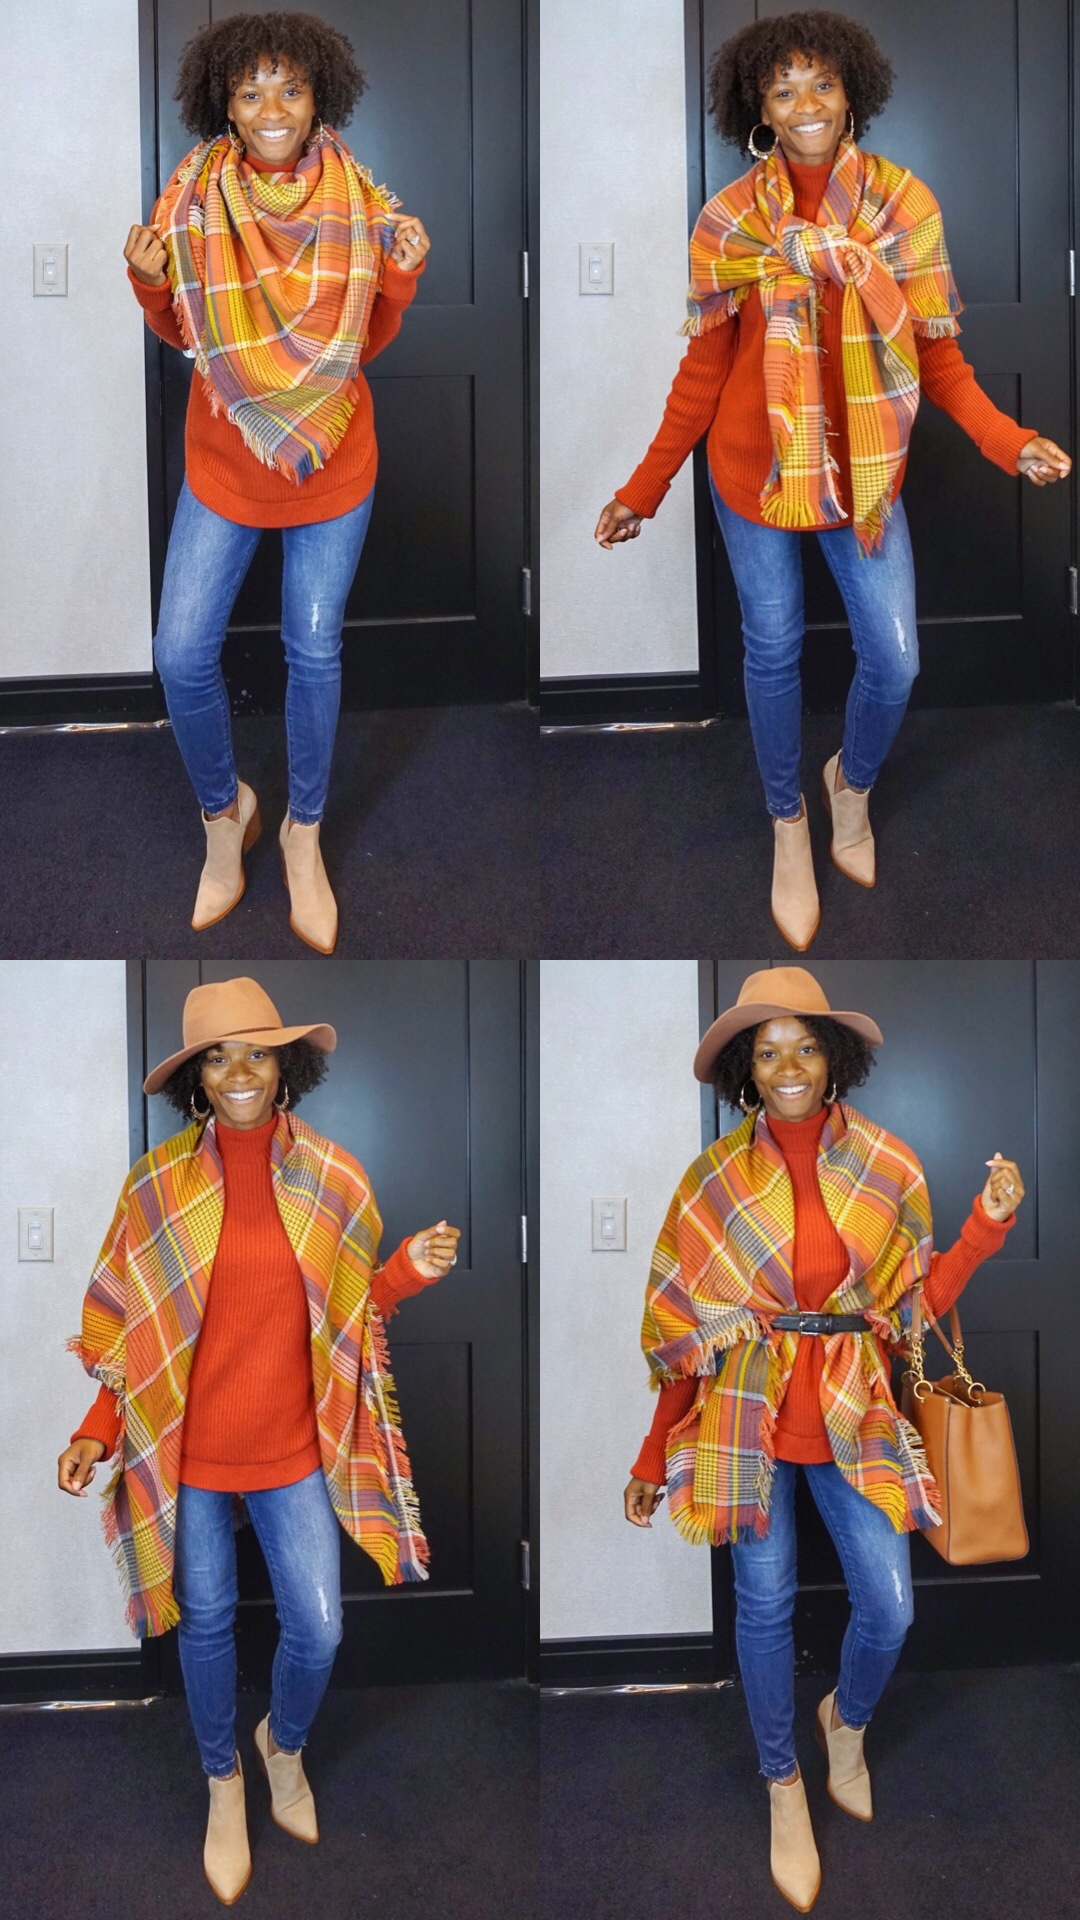 Video: 4 Ways To Style A Blanket Scarf #NSale Edition